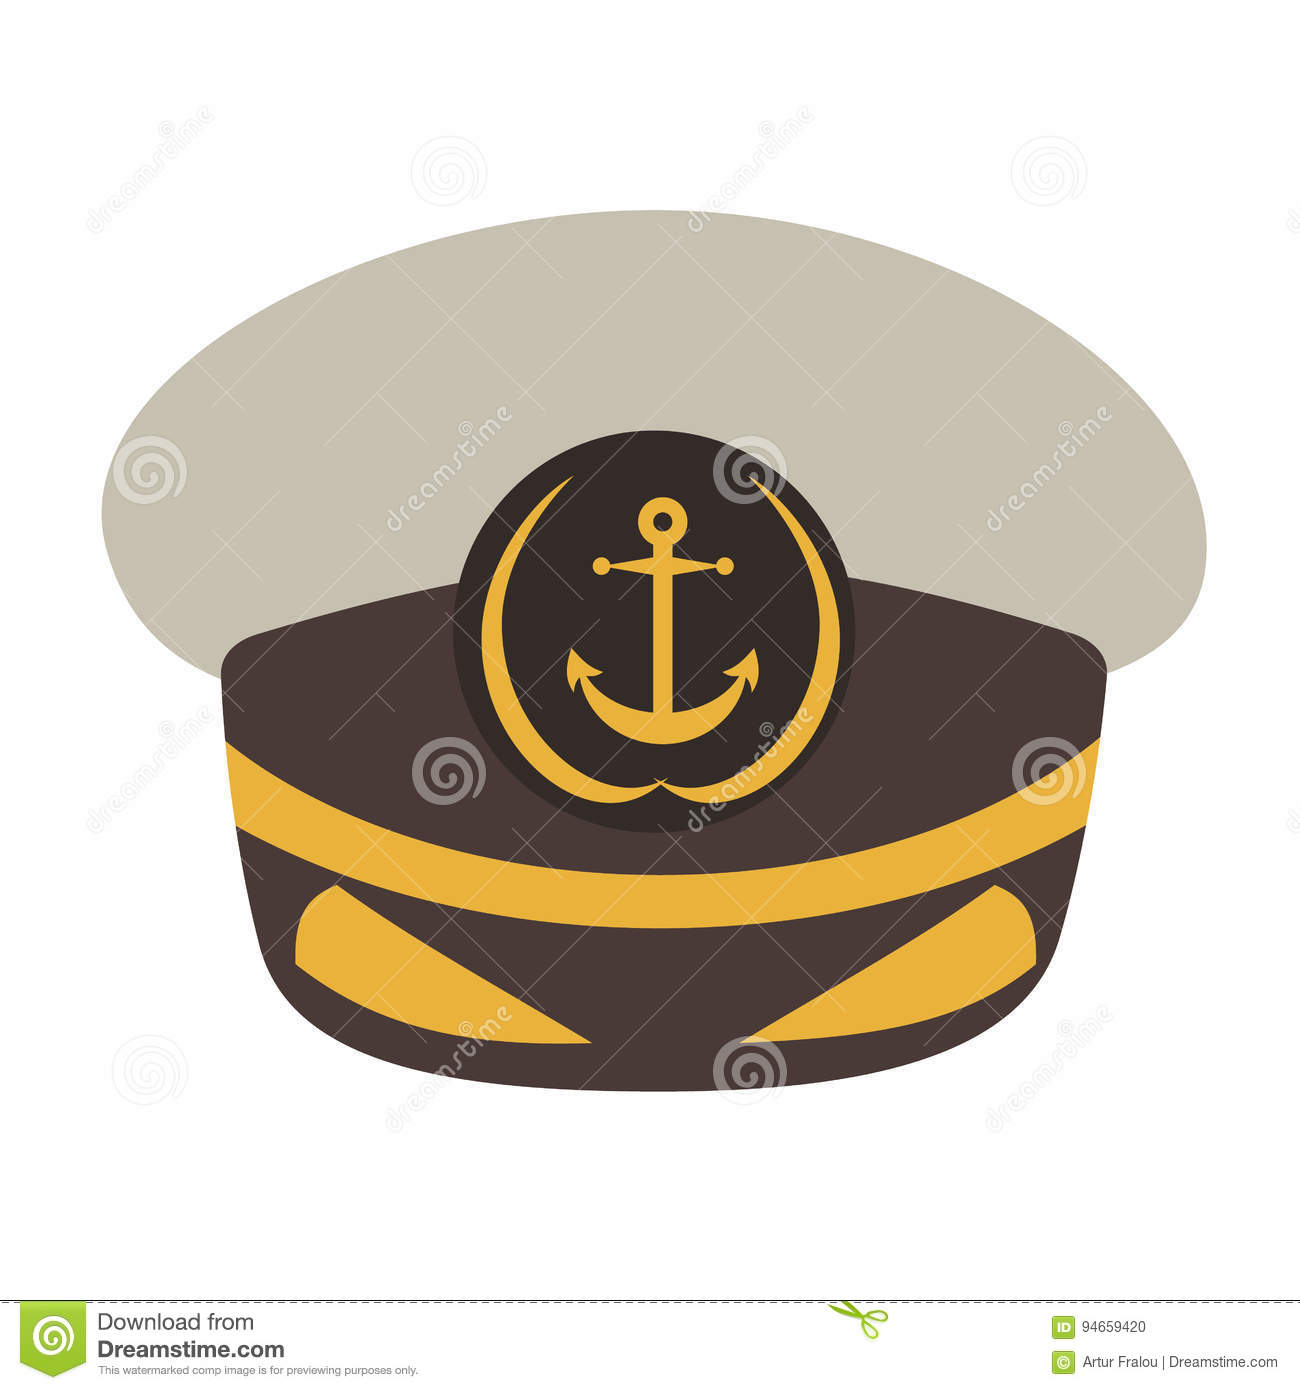 8d30c1337ac Captain hat. Flat style vector illustration isolated on white background